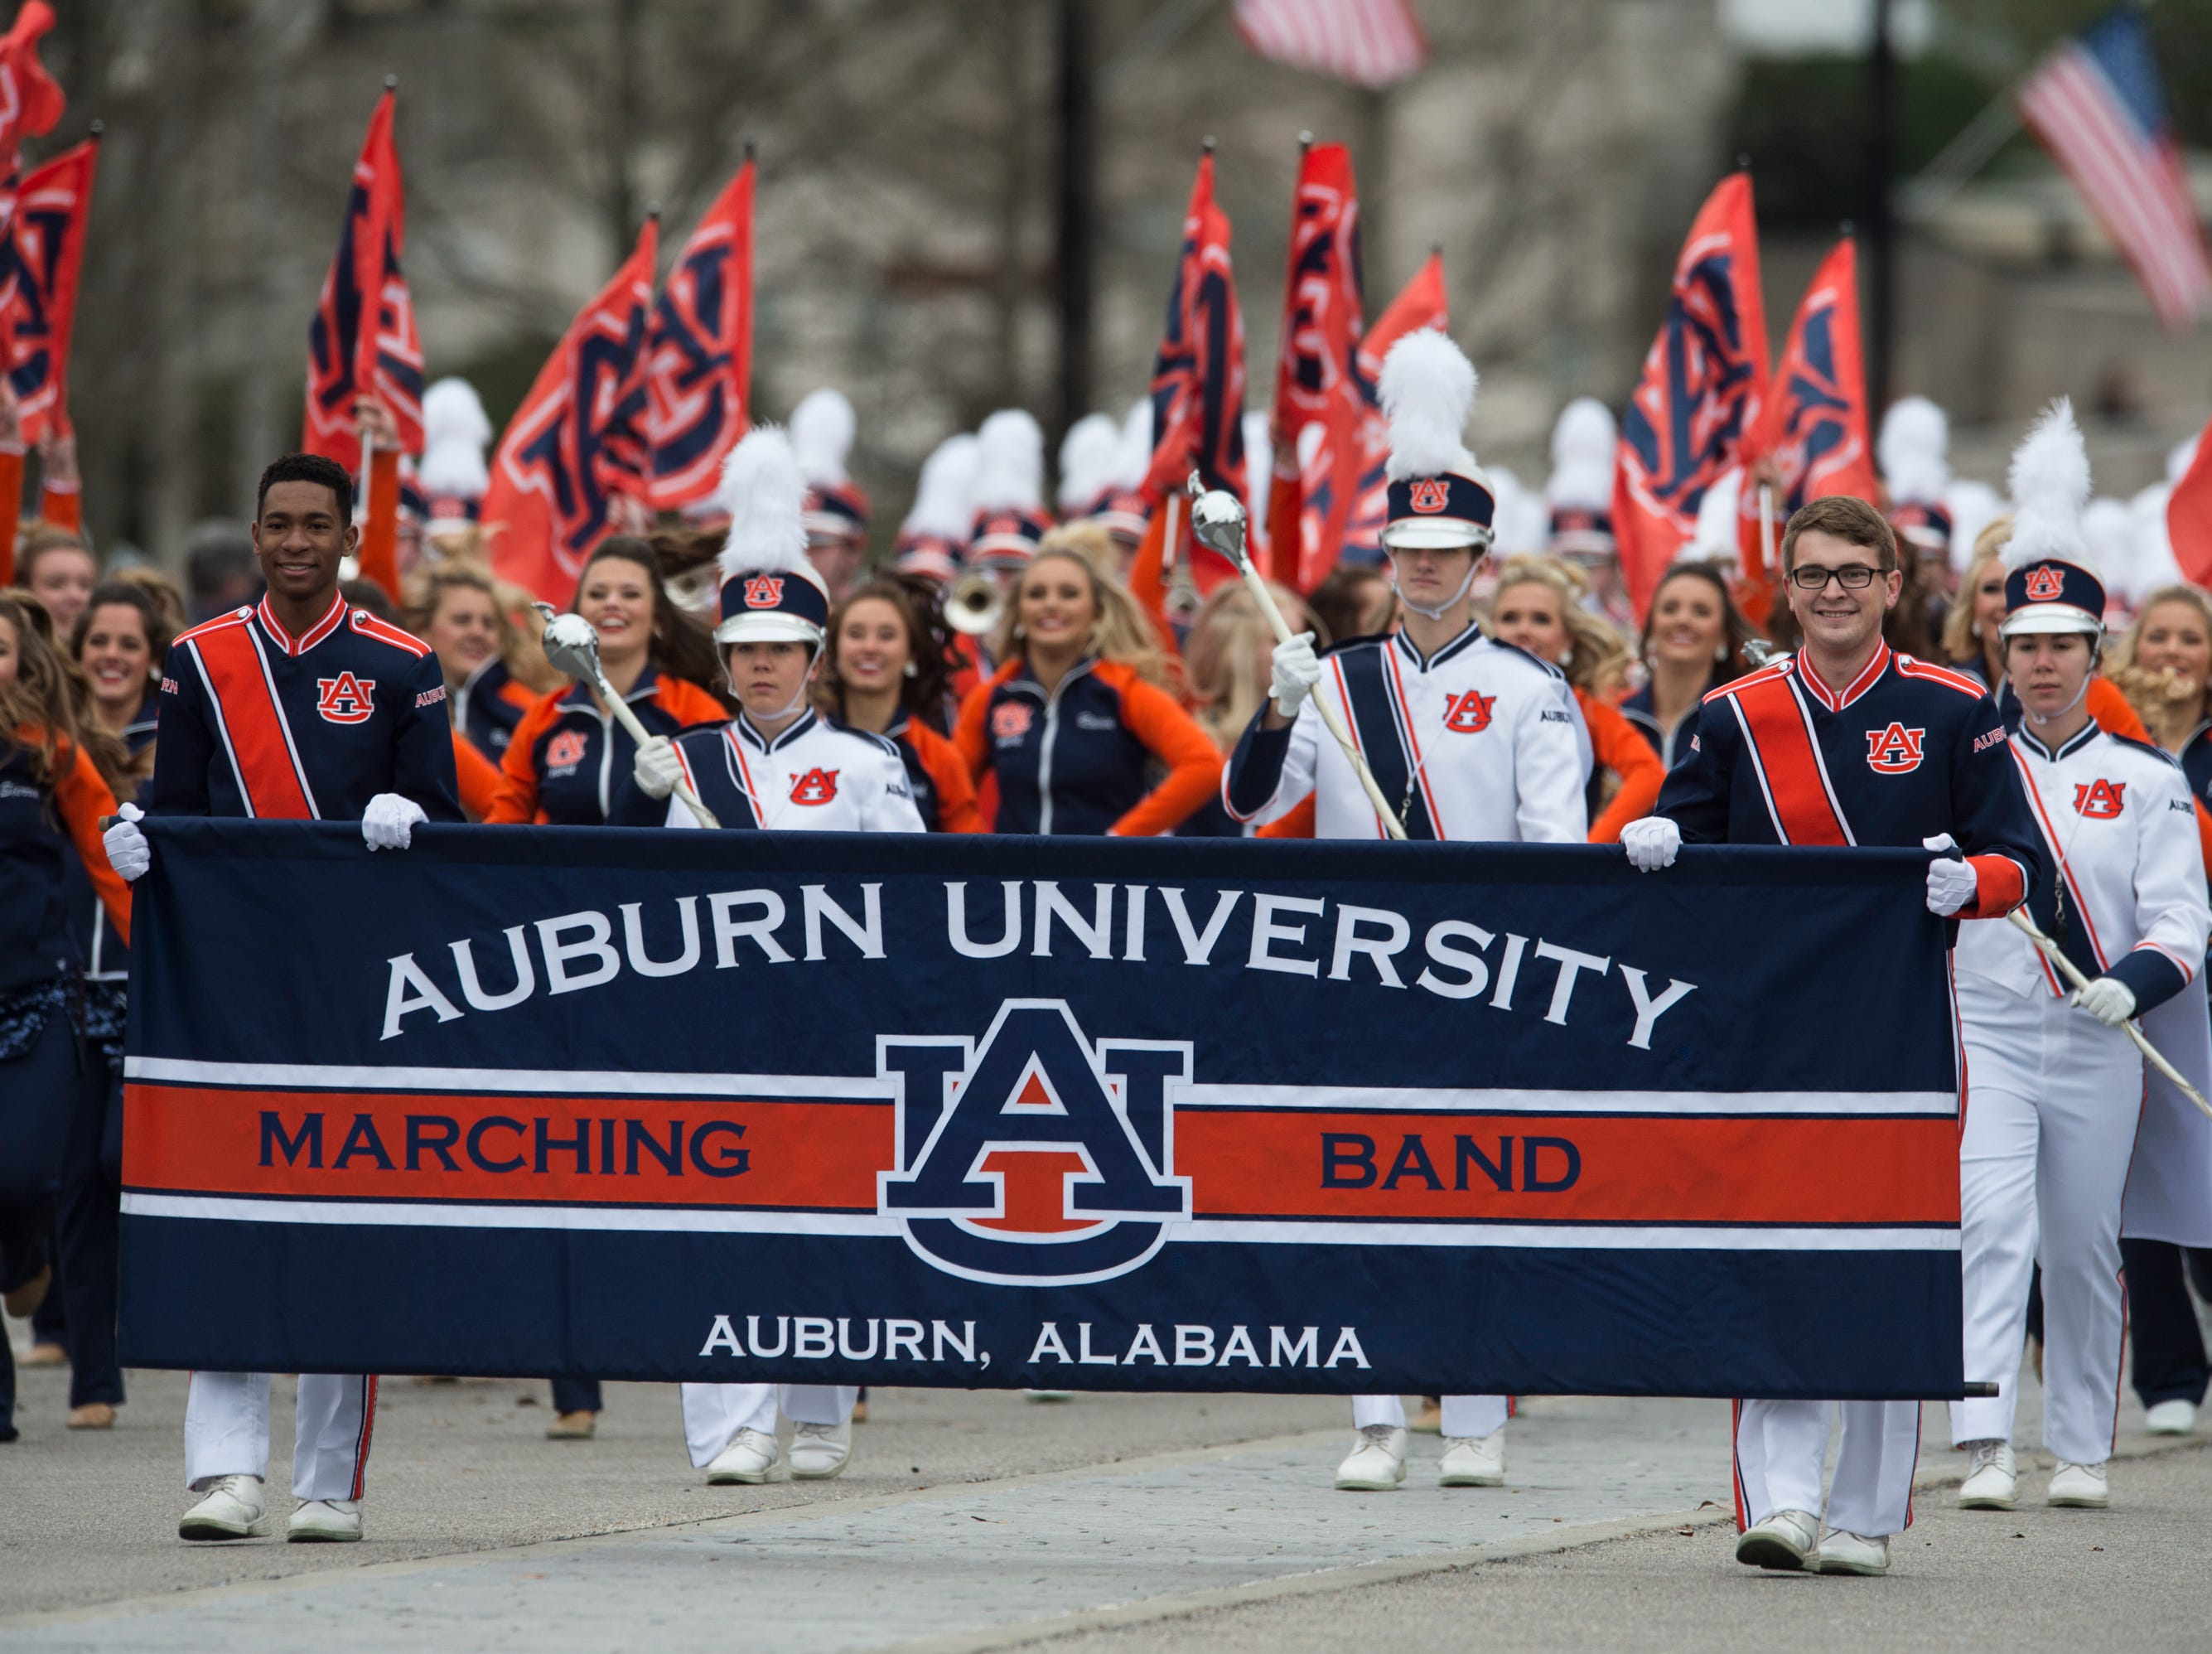 Auburn University marching band plays during the inauguration day parade in Montgomery, Ala., on Monday, Jan. 14, 2019.